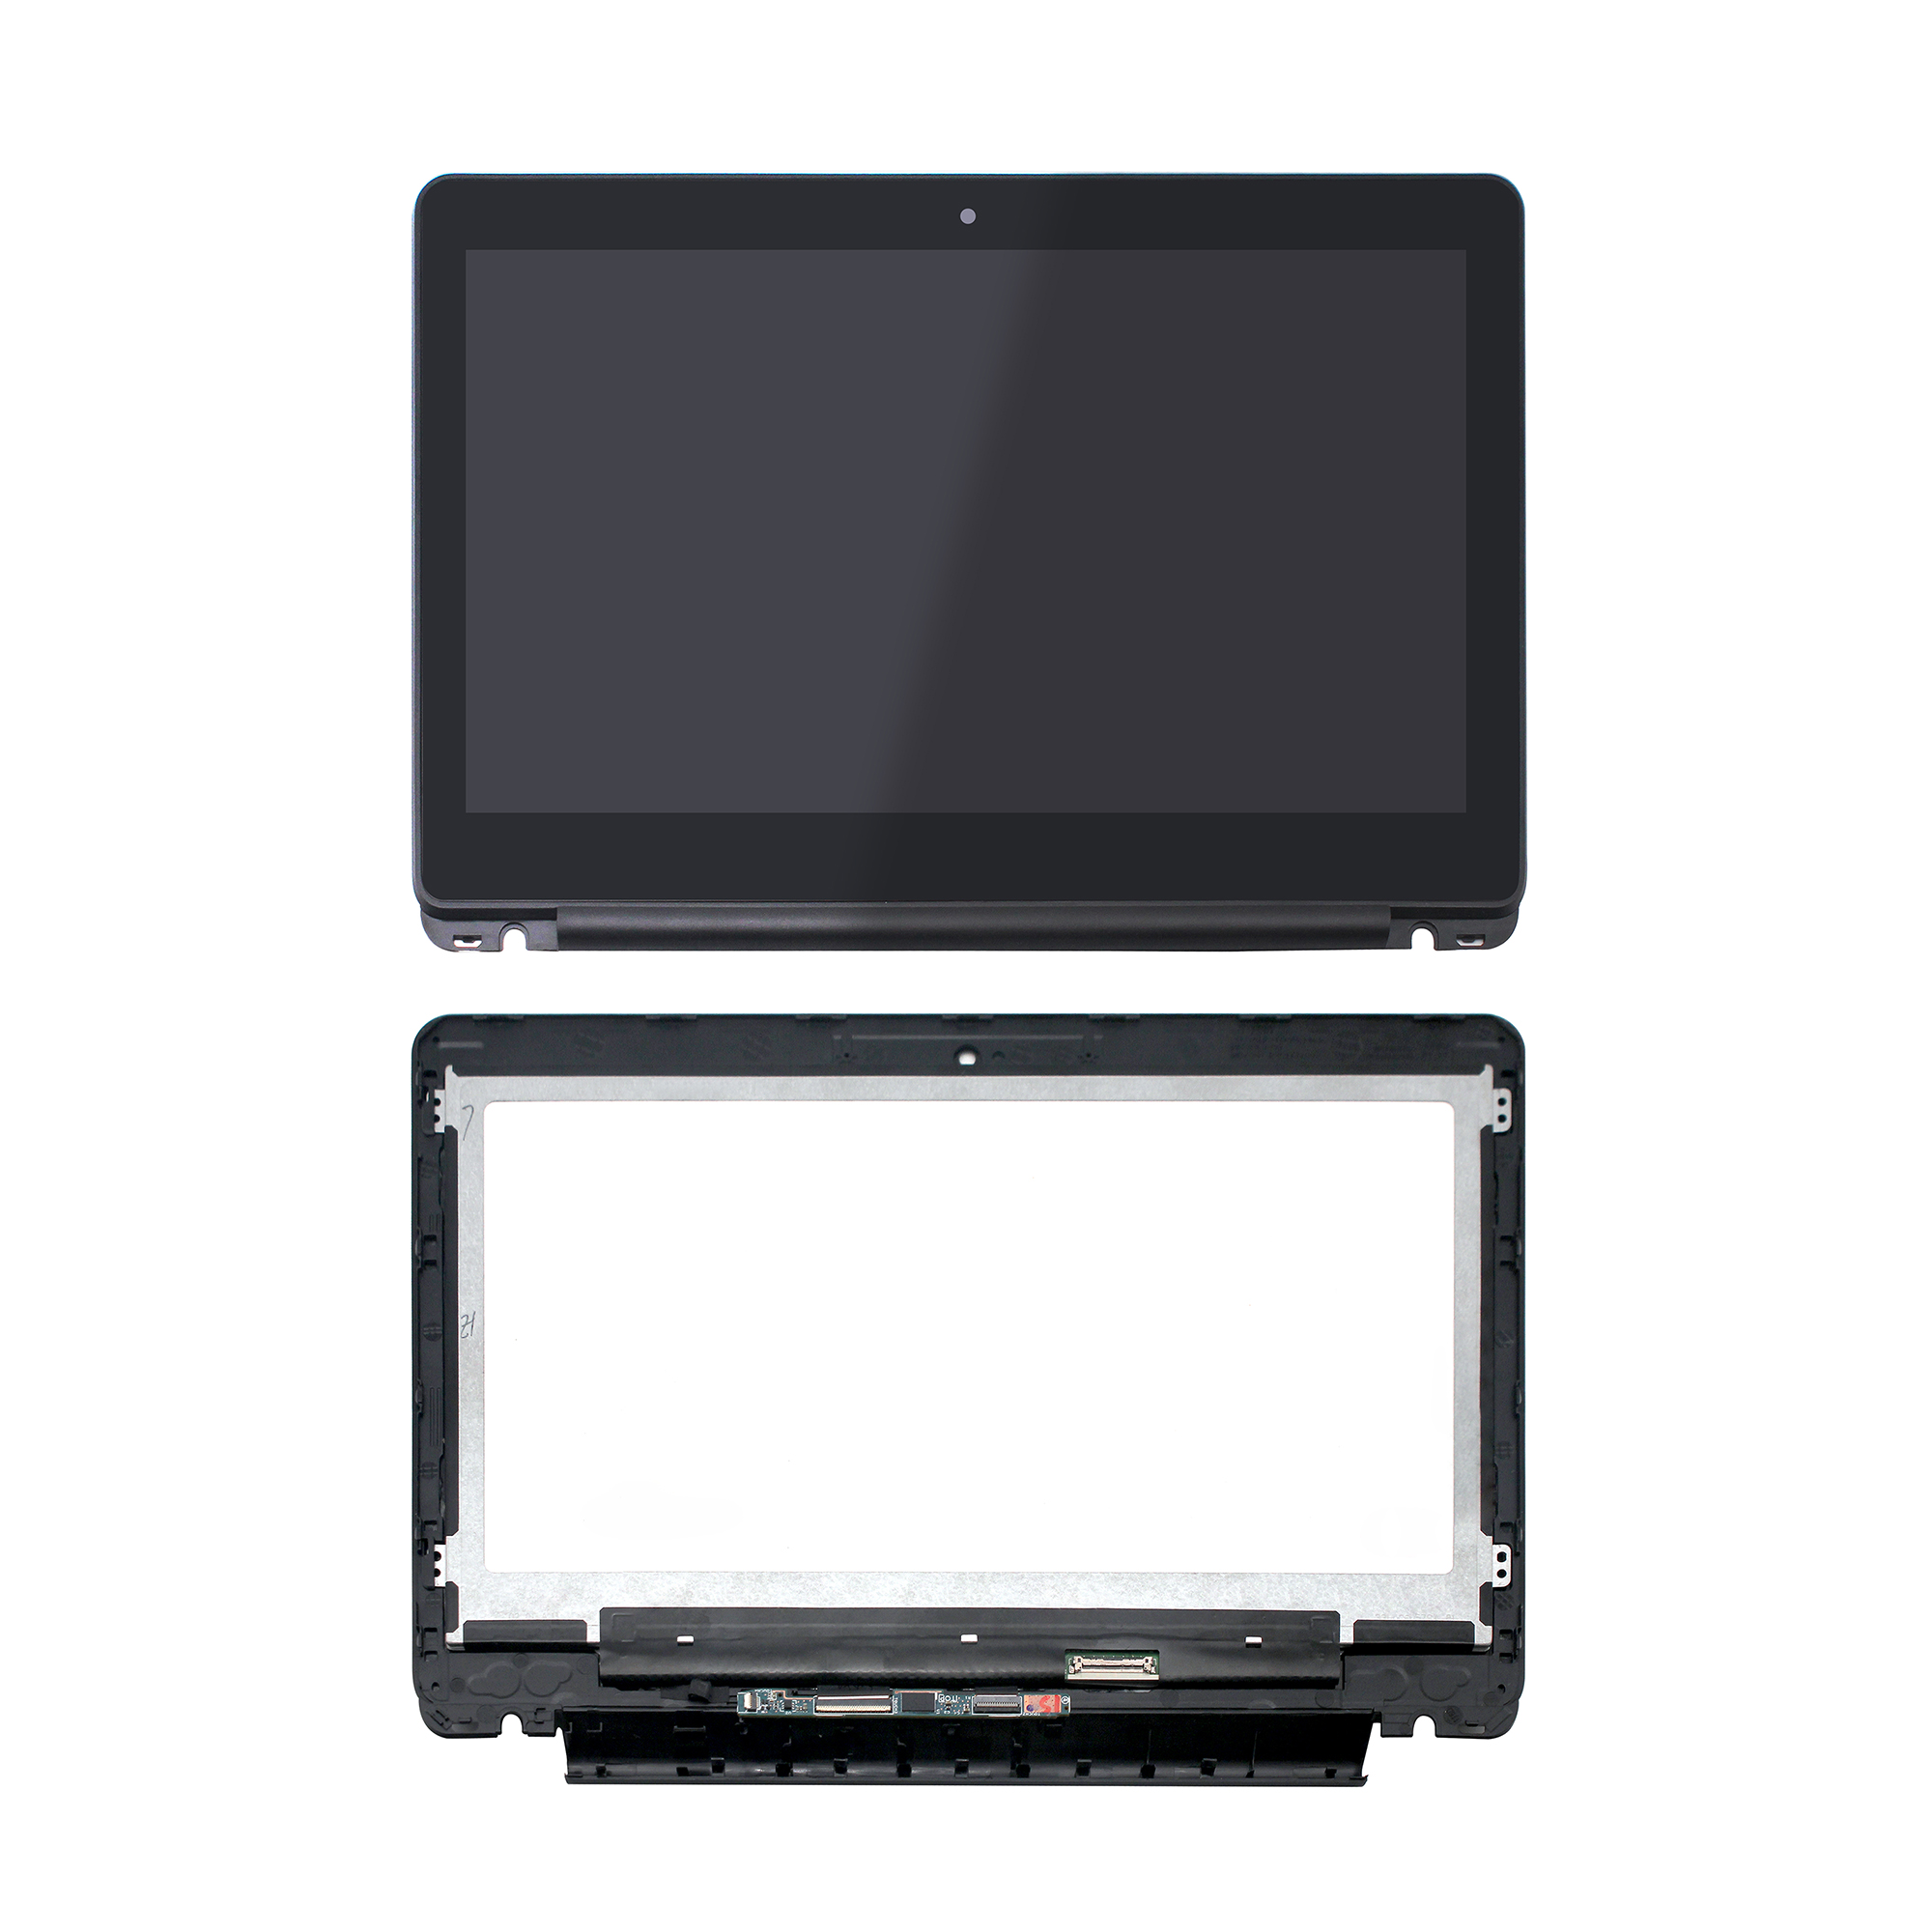 New 906629-001 Lcd Touch Screen Digitizer Assembly With Bezel For Hp  Chromebook 11-v000 11-v011dx 11-v002dx 11-v Series - Buy Led Lcd Touch  Screen